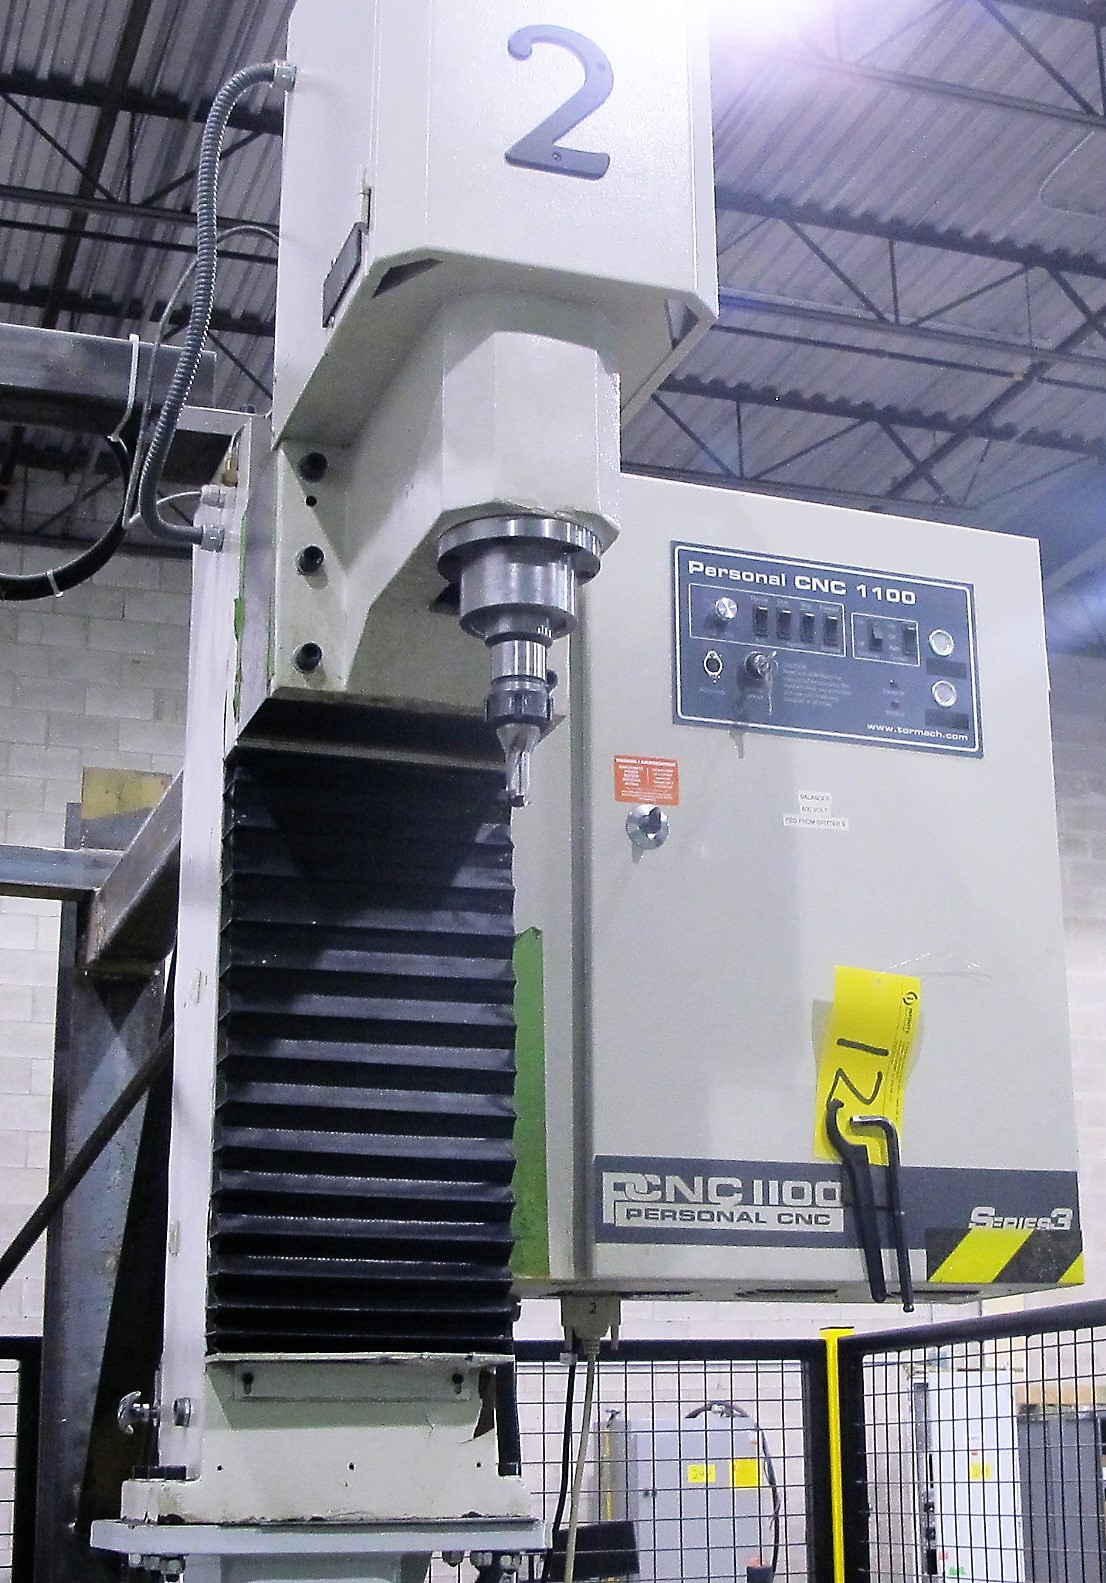 Lot 12 - TORMACH PERSONAL CNC 1100 NC SERIES 3 MILLING MACHINE W/DELL PC COMPUTER, S/N 2305 (SUBJECT TO